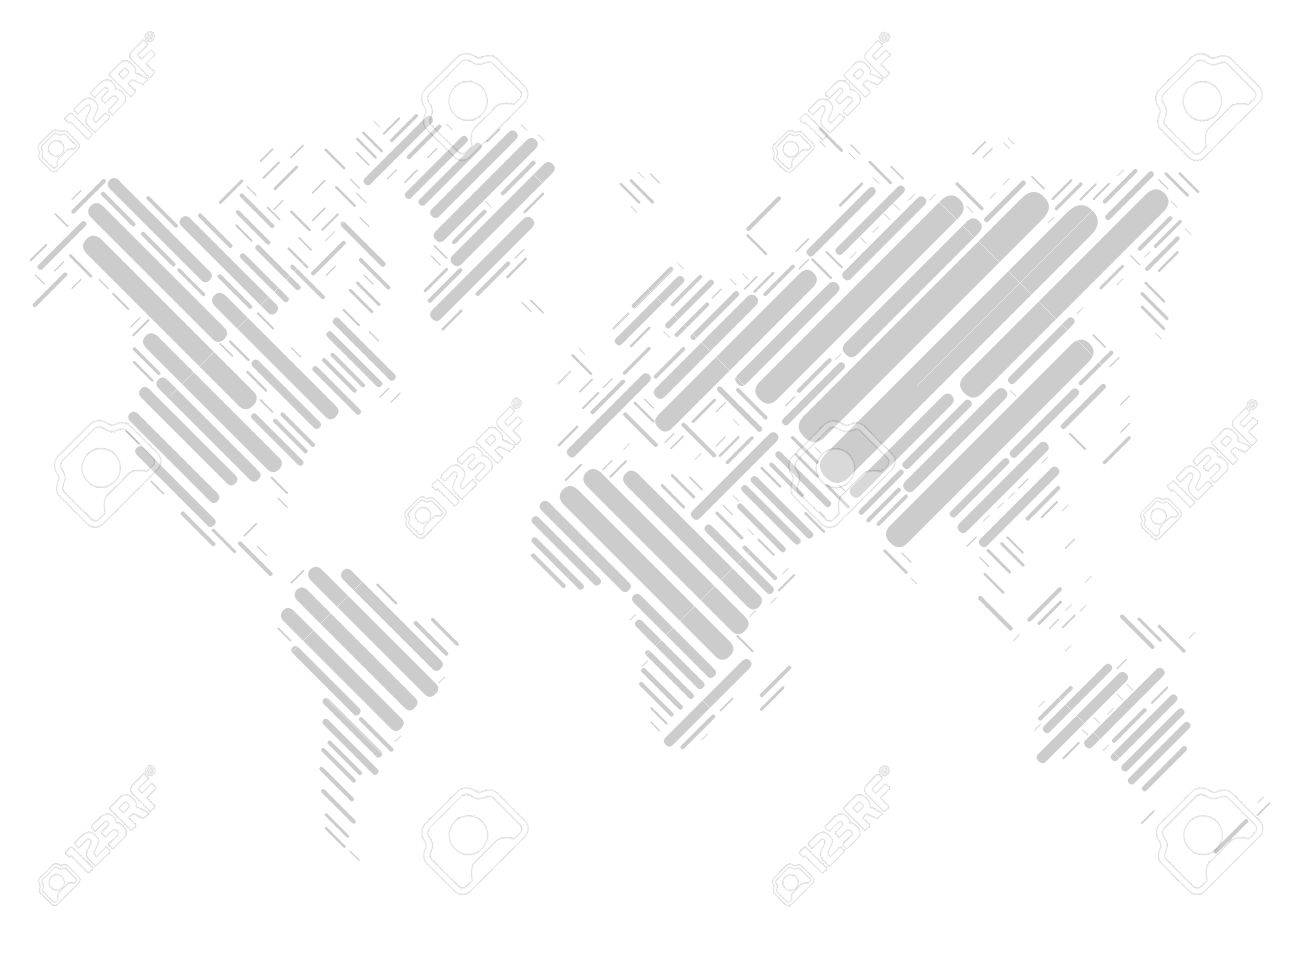 vector world map mosaic of grey blocks with rounded corners on white background vector map of the world modern light background world design